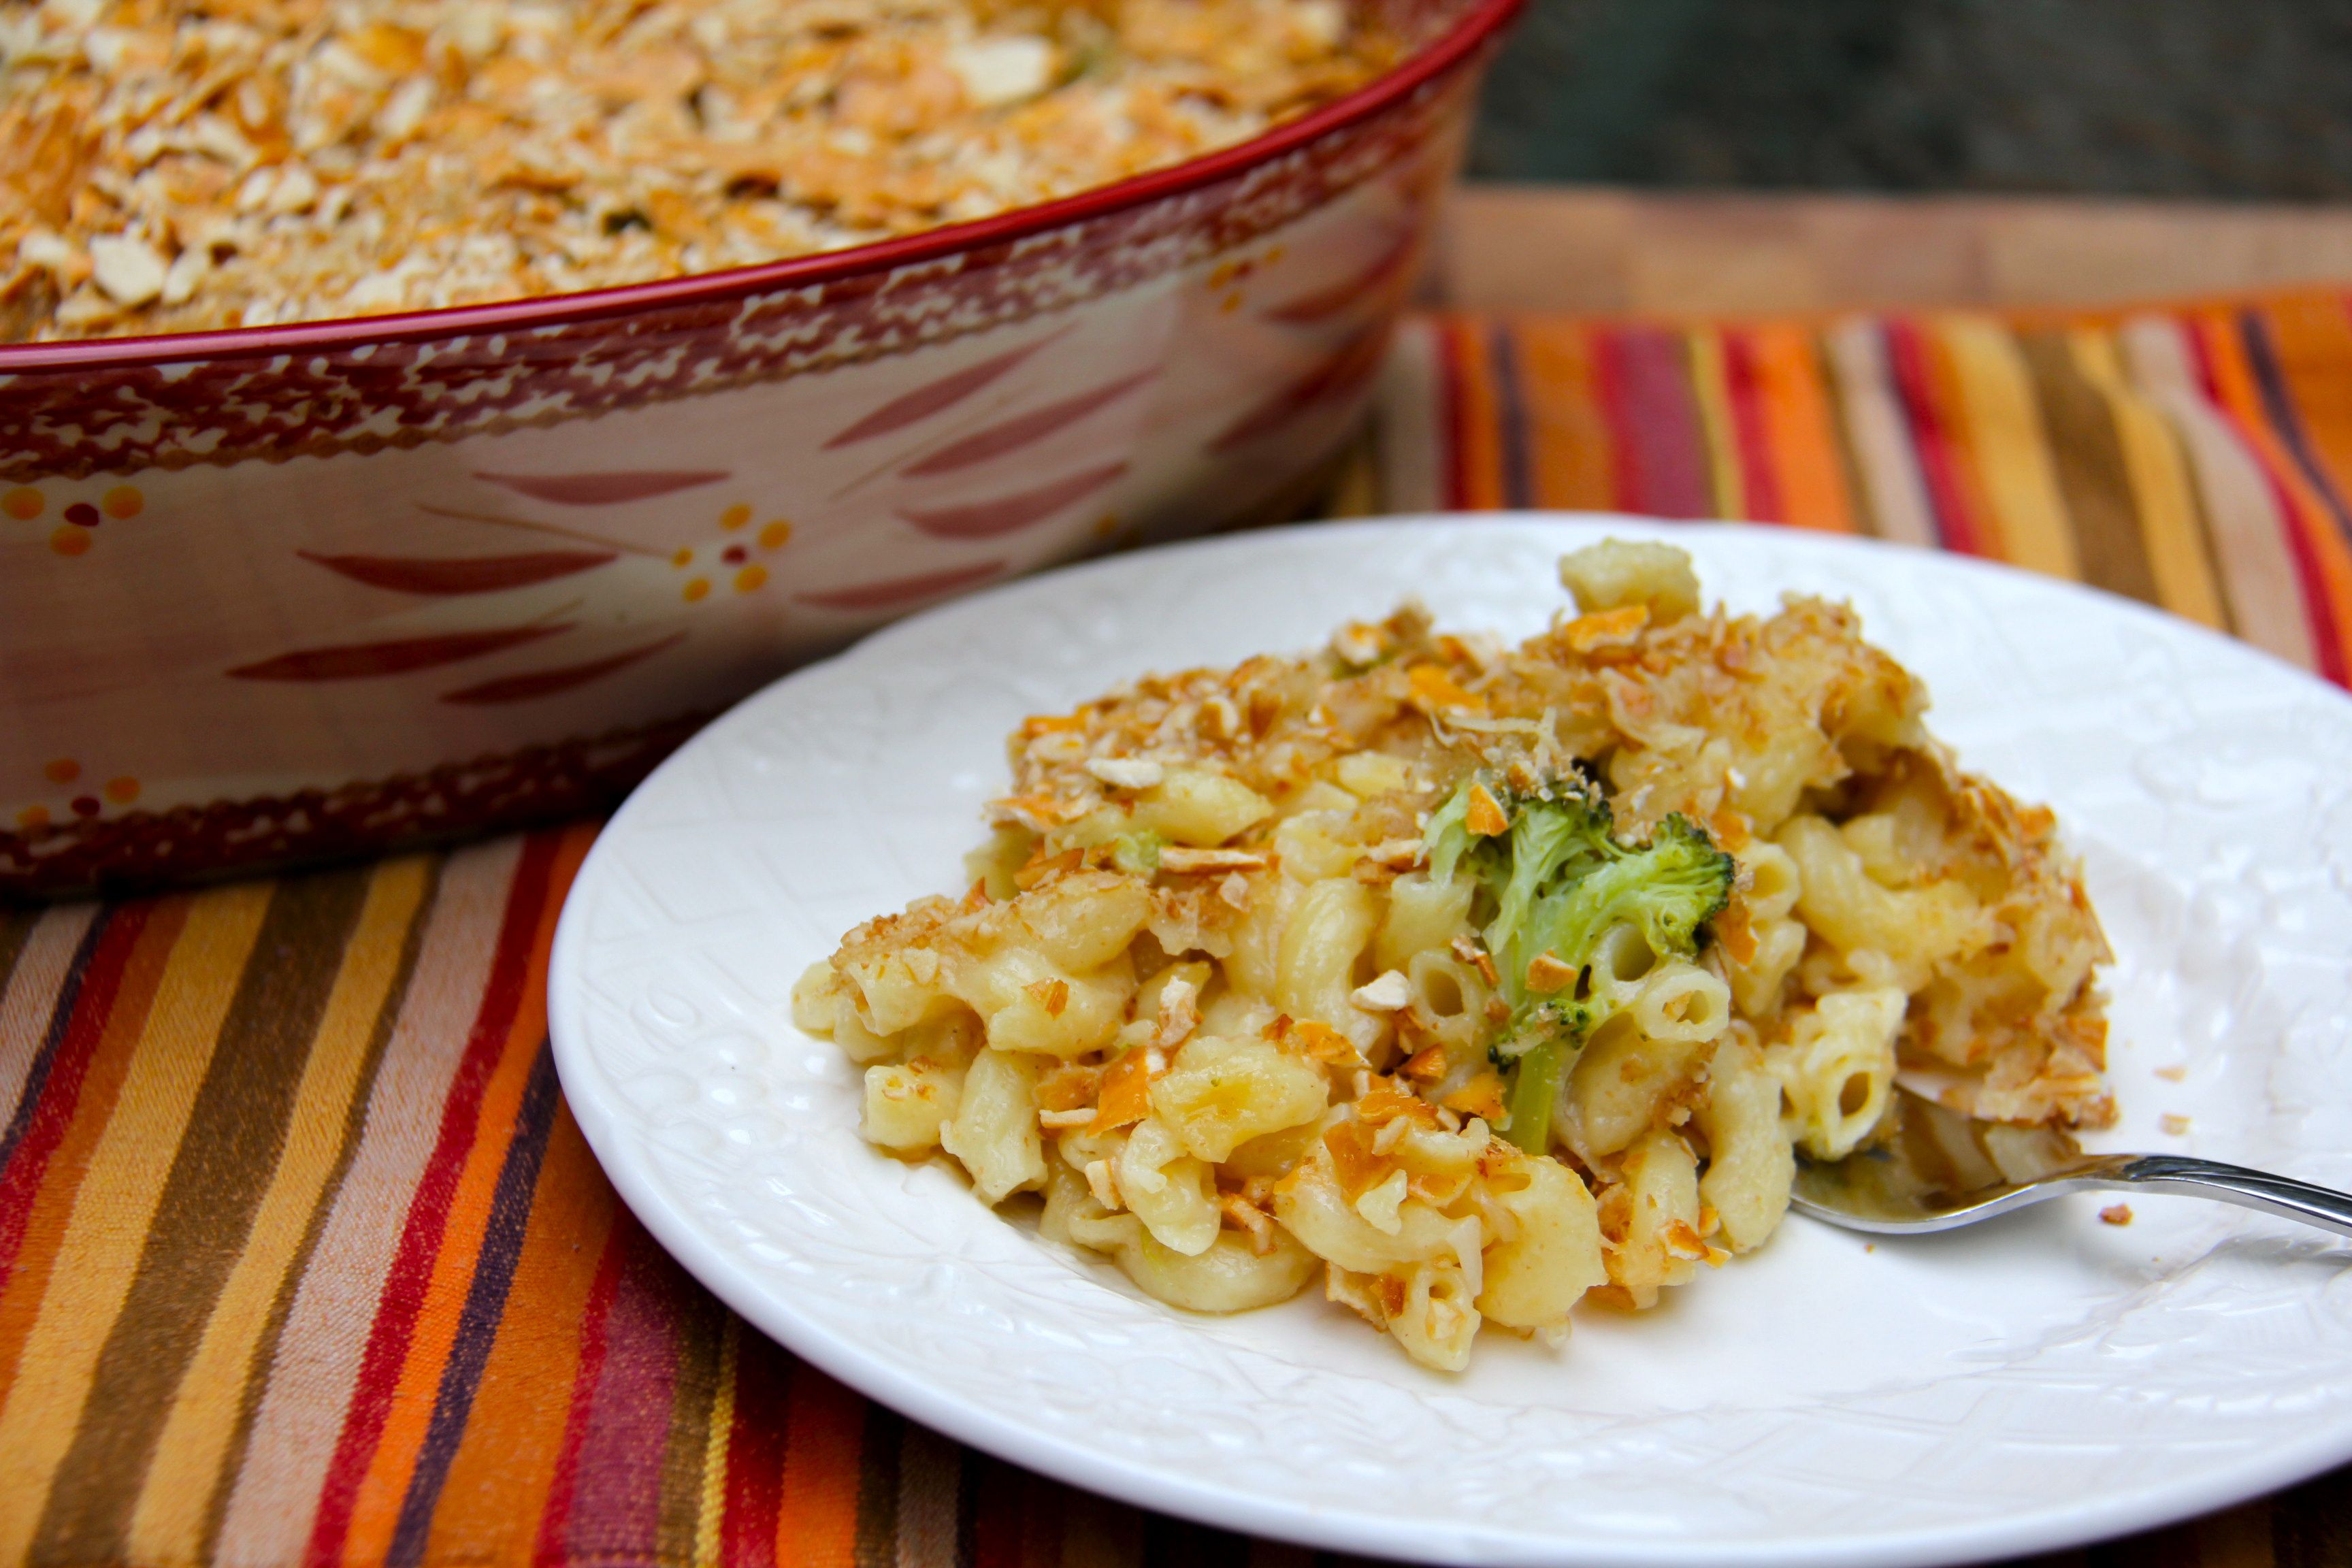 Broccoli Macaroni & Cheese